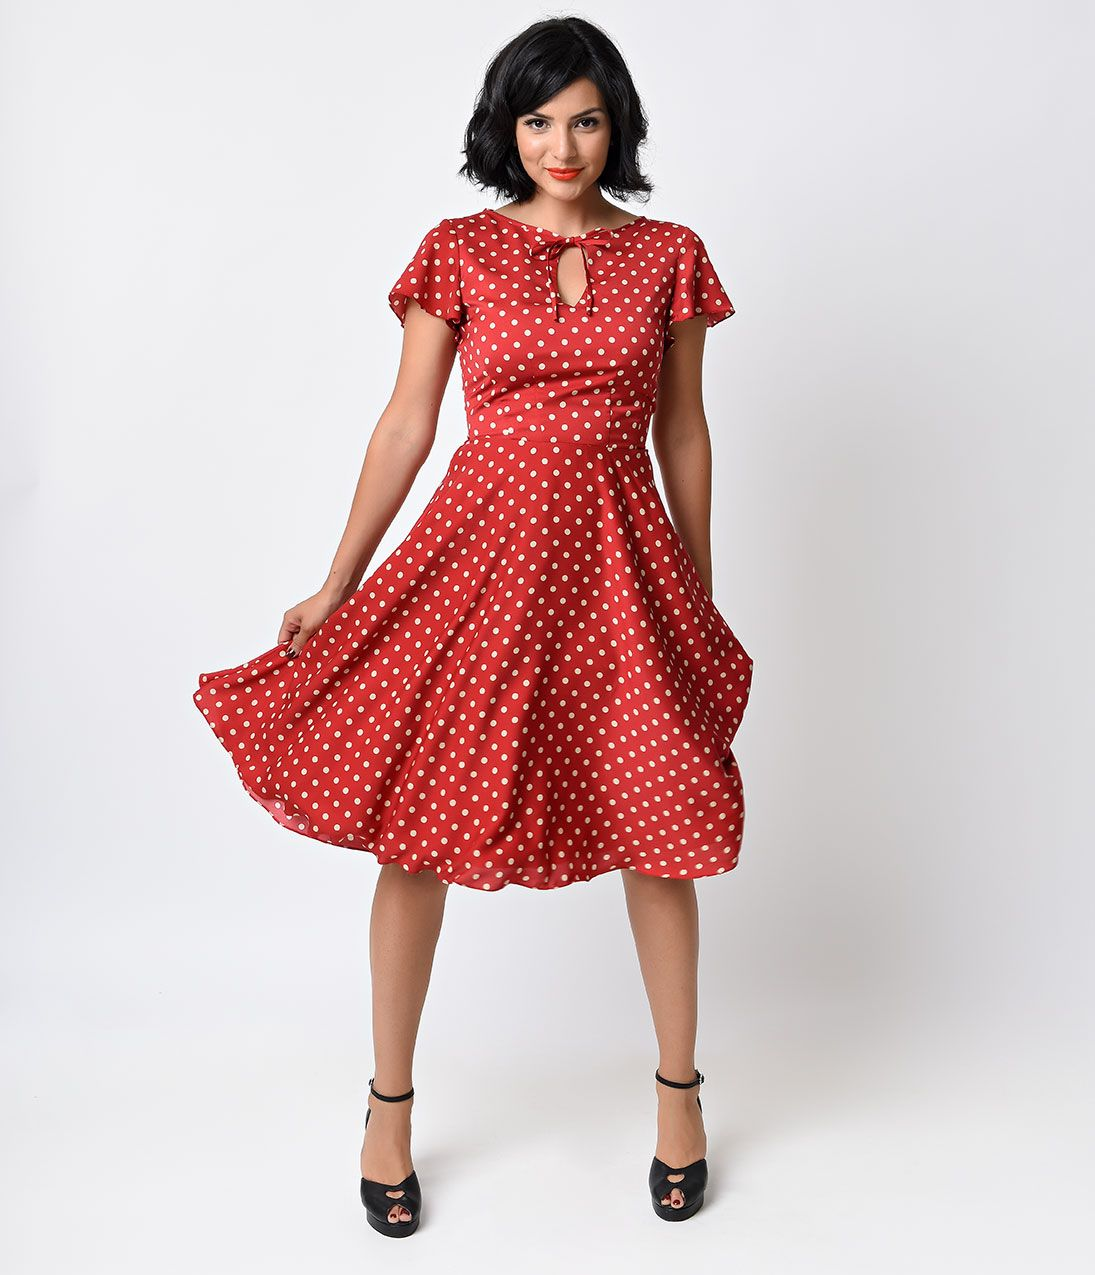 1940s Style Dresses, Fashion & Clothing   1940s, Unique vintage and ...